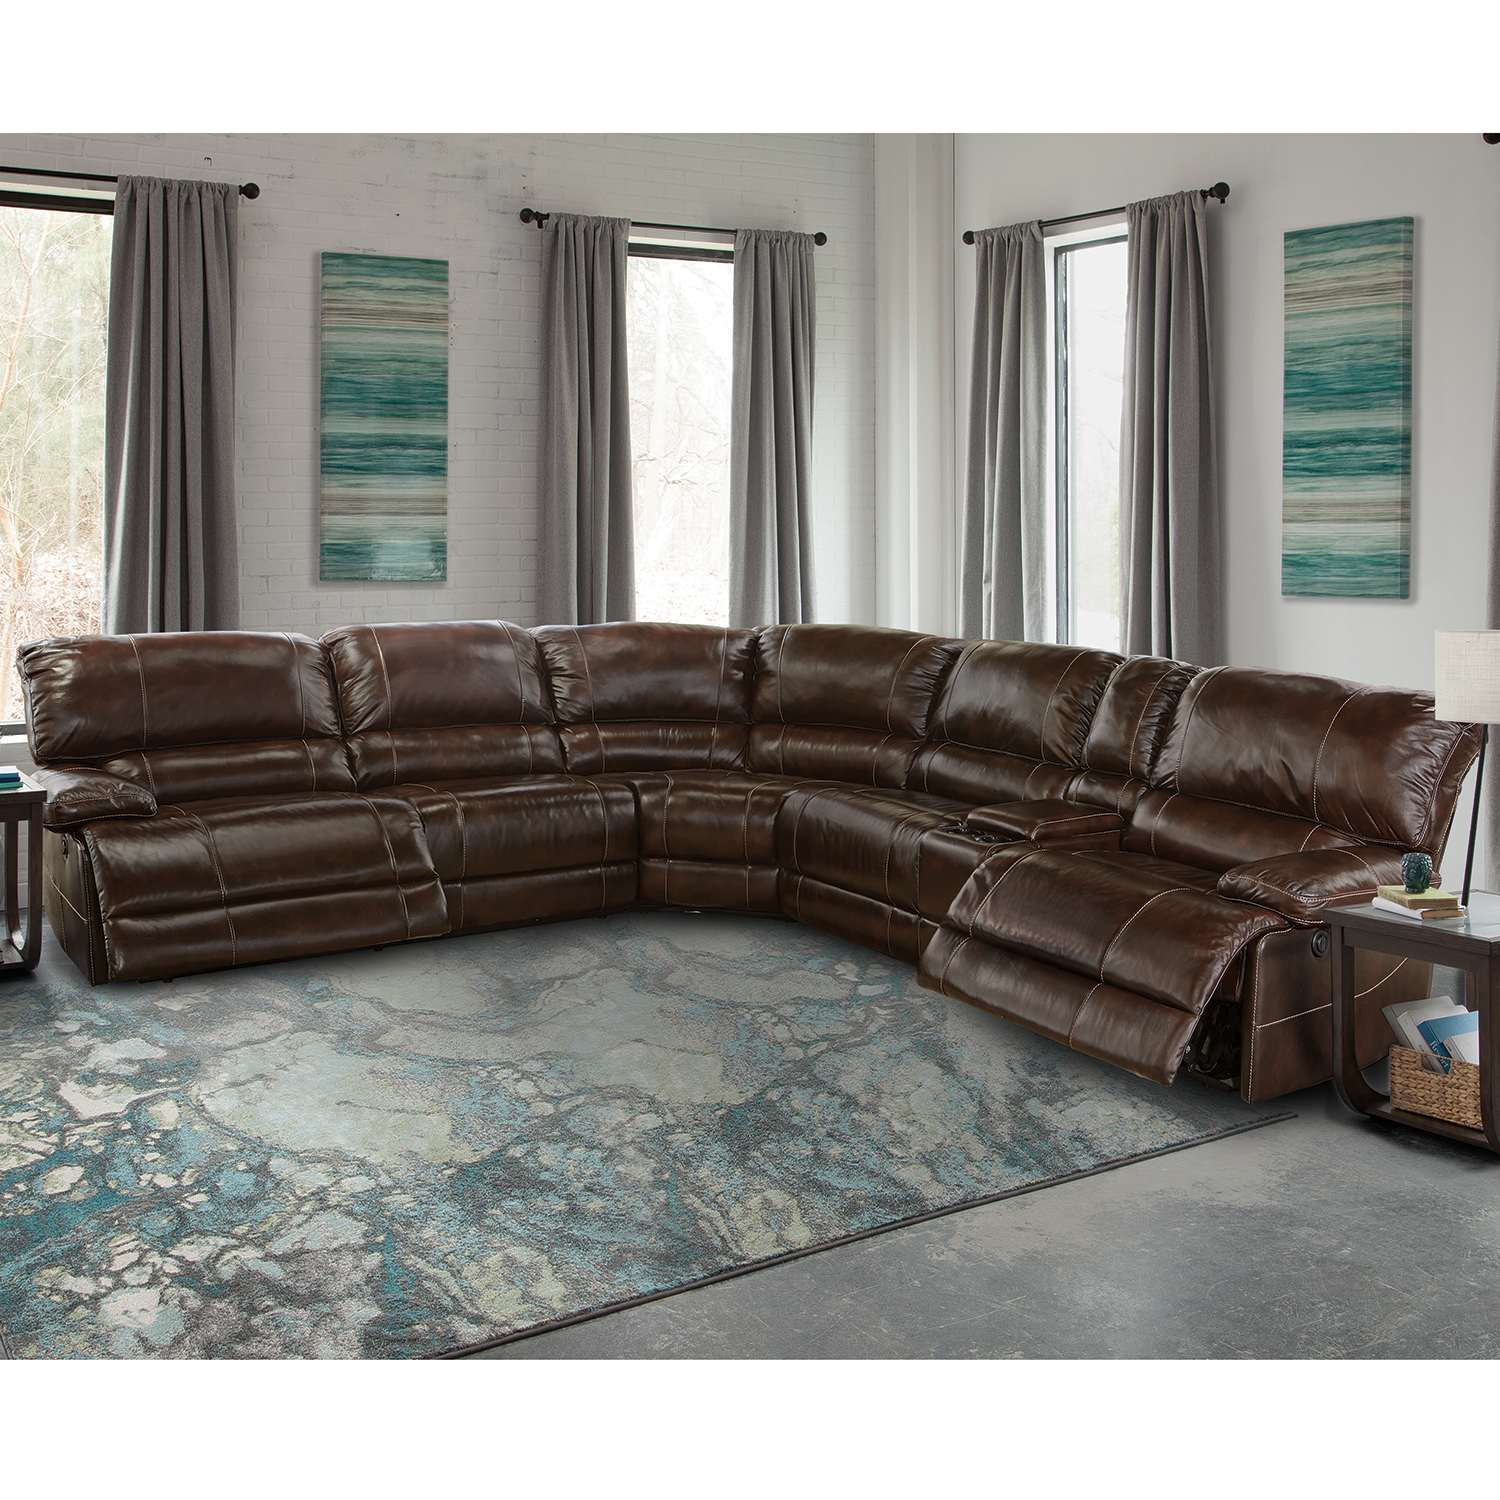 Shaw 6 Piece Sectional Sofa in Havana Leather  sc 1 st  Dynamic Home Decor : 6 piece sectional - Sectionals, Sofas & Couches